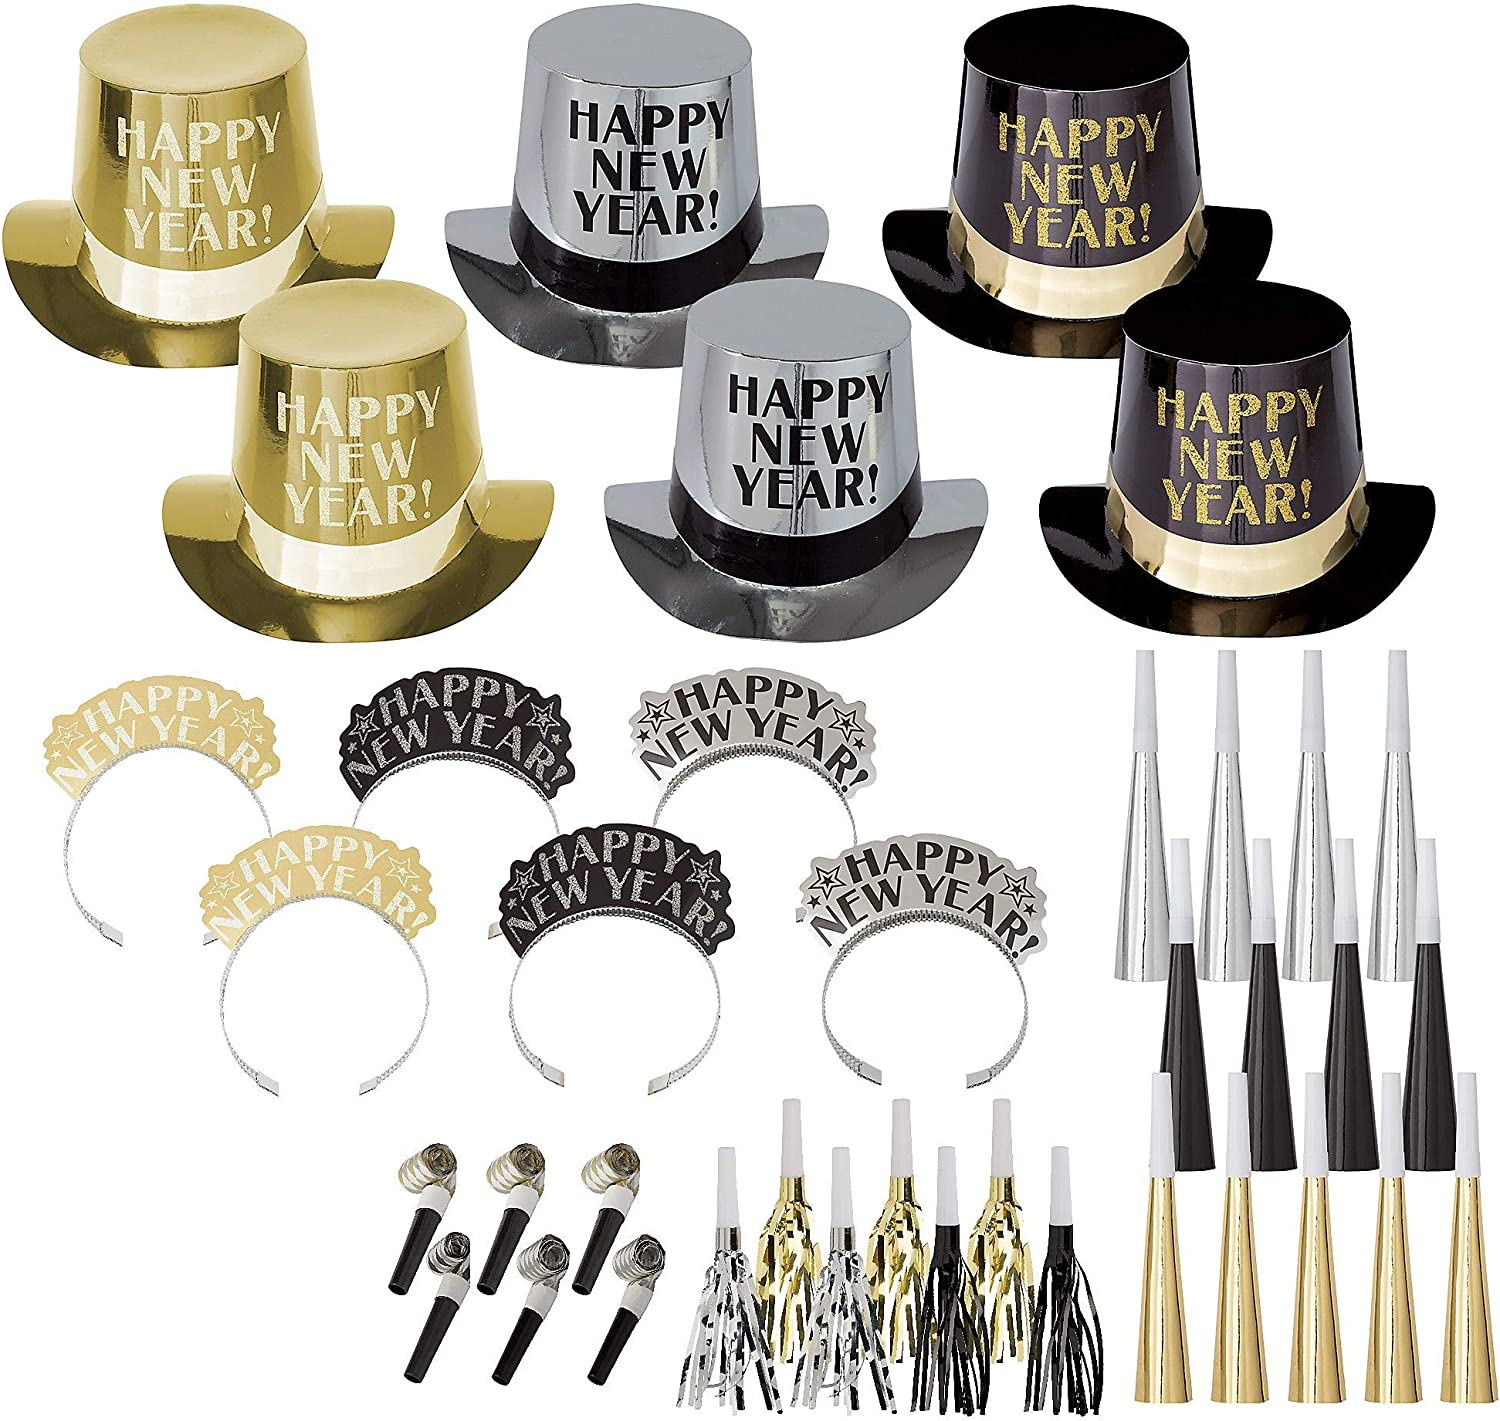 Amscan Get The Party Started New Year's Party Kit for 25, Includes Top Hats and Tiaras